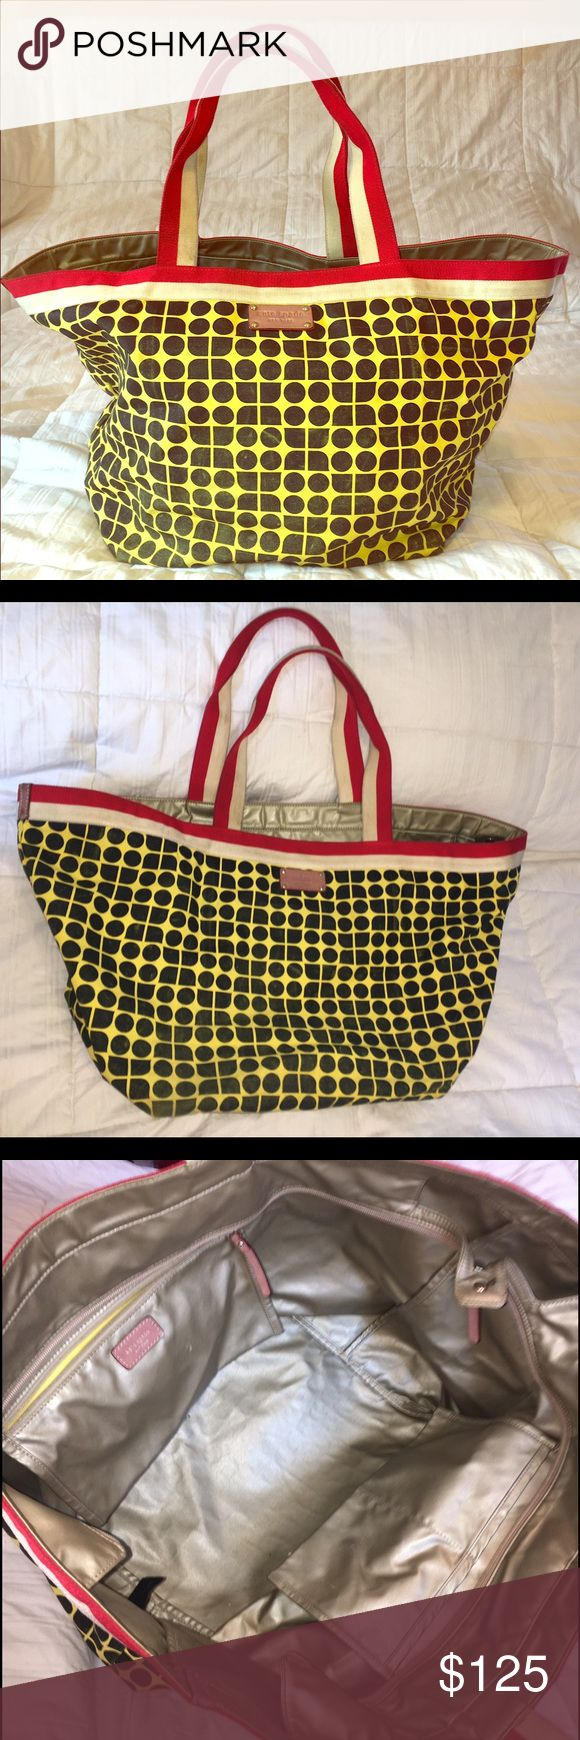 "⛱KATE SPADE⛱ Large Canvas Tote Large canvas tote bag with top zipper to keep things safe and fully lined with waterproof material. The bright yellow fabric is perfect for sunny days at the park or beach! Zipper pocket inside to store small stuff and two other pockets for cell phone and ""extras"". kate spade Bags Totes"